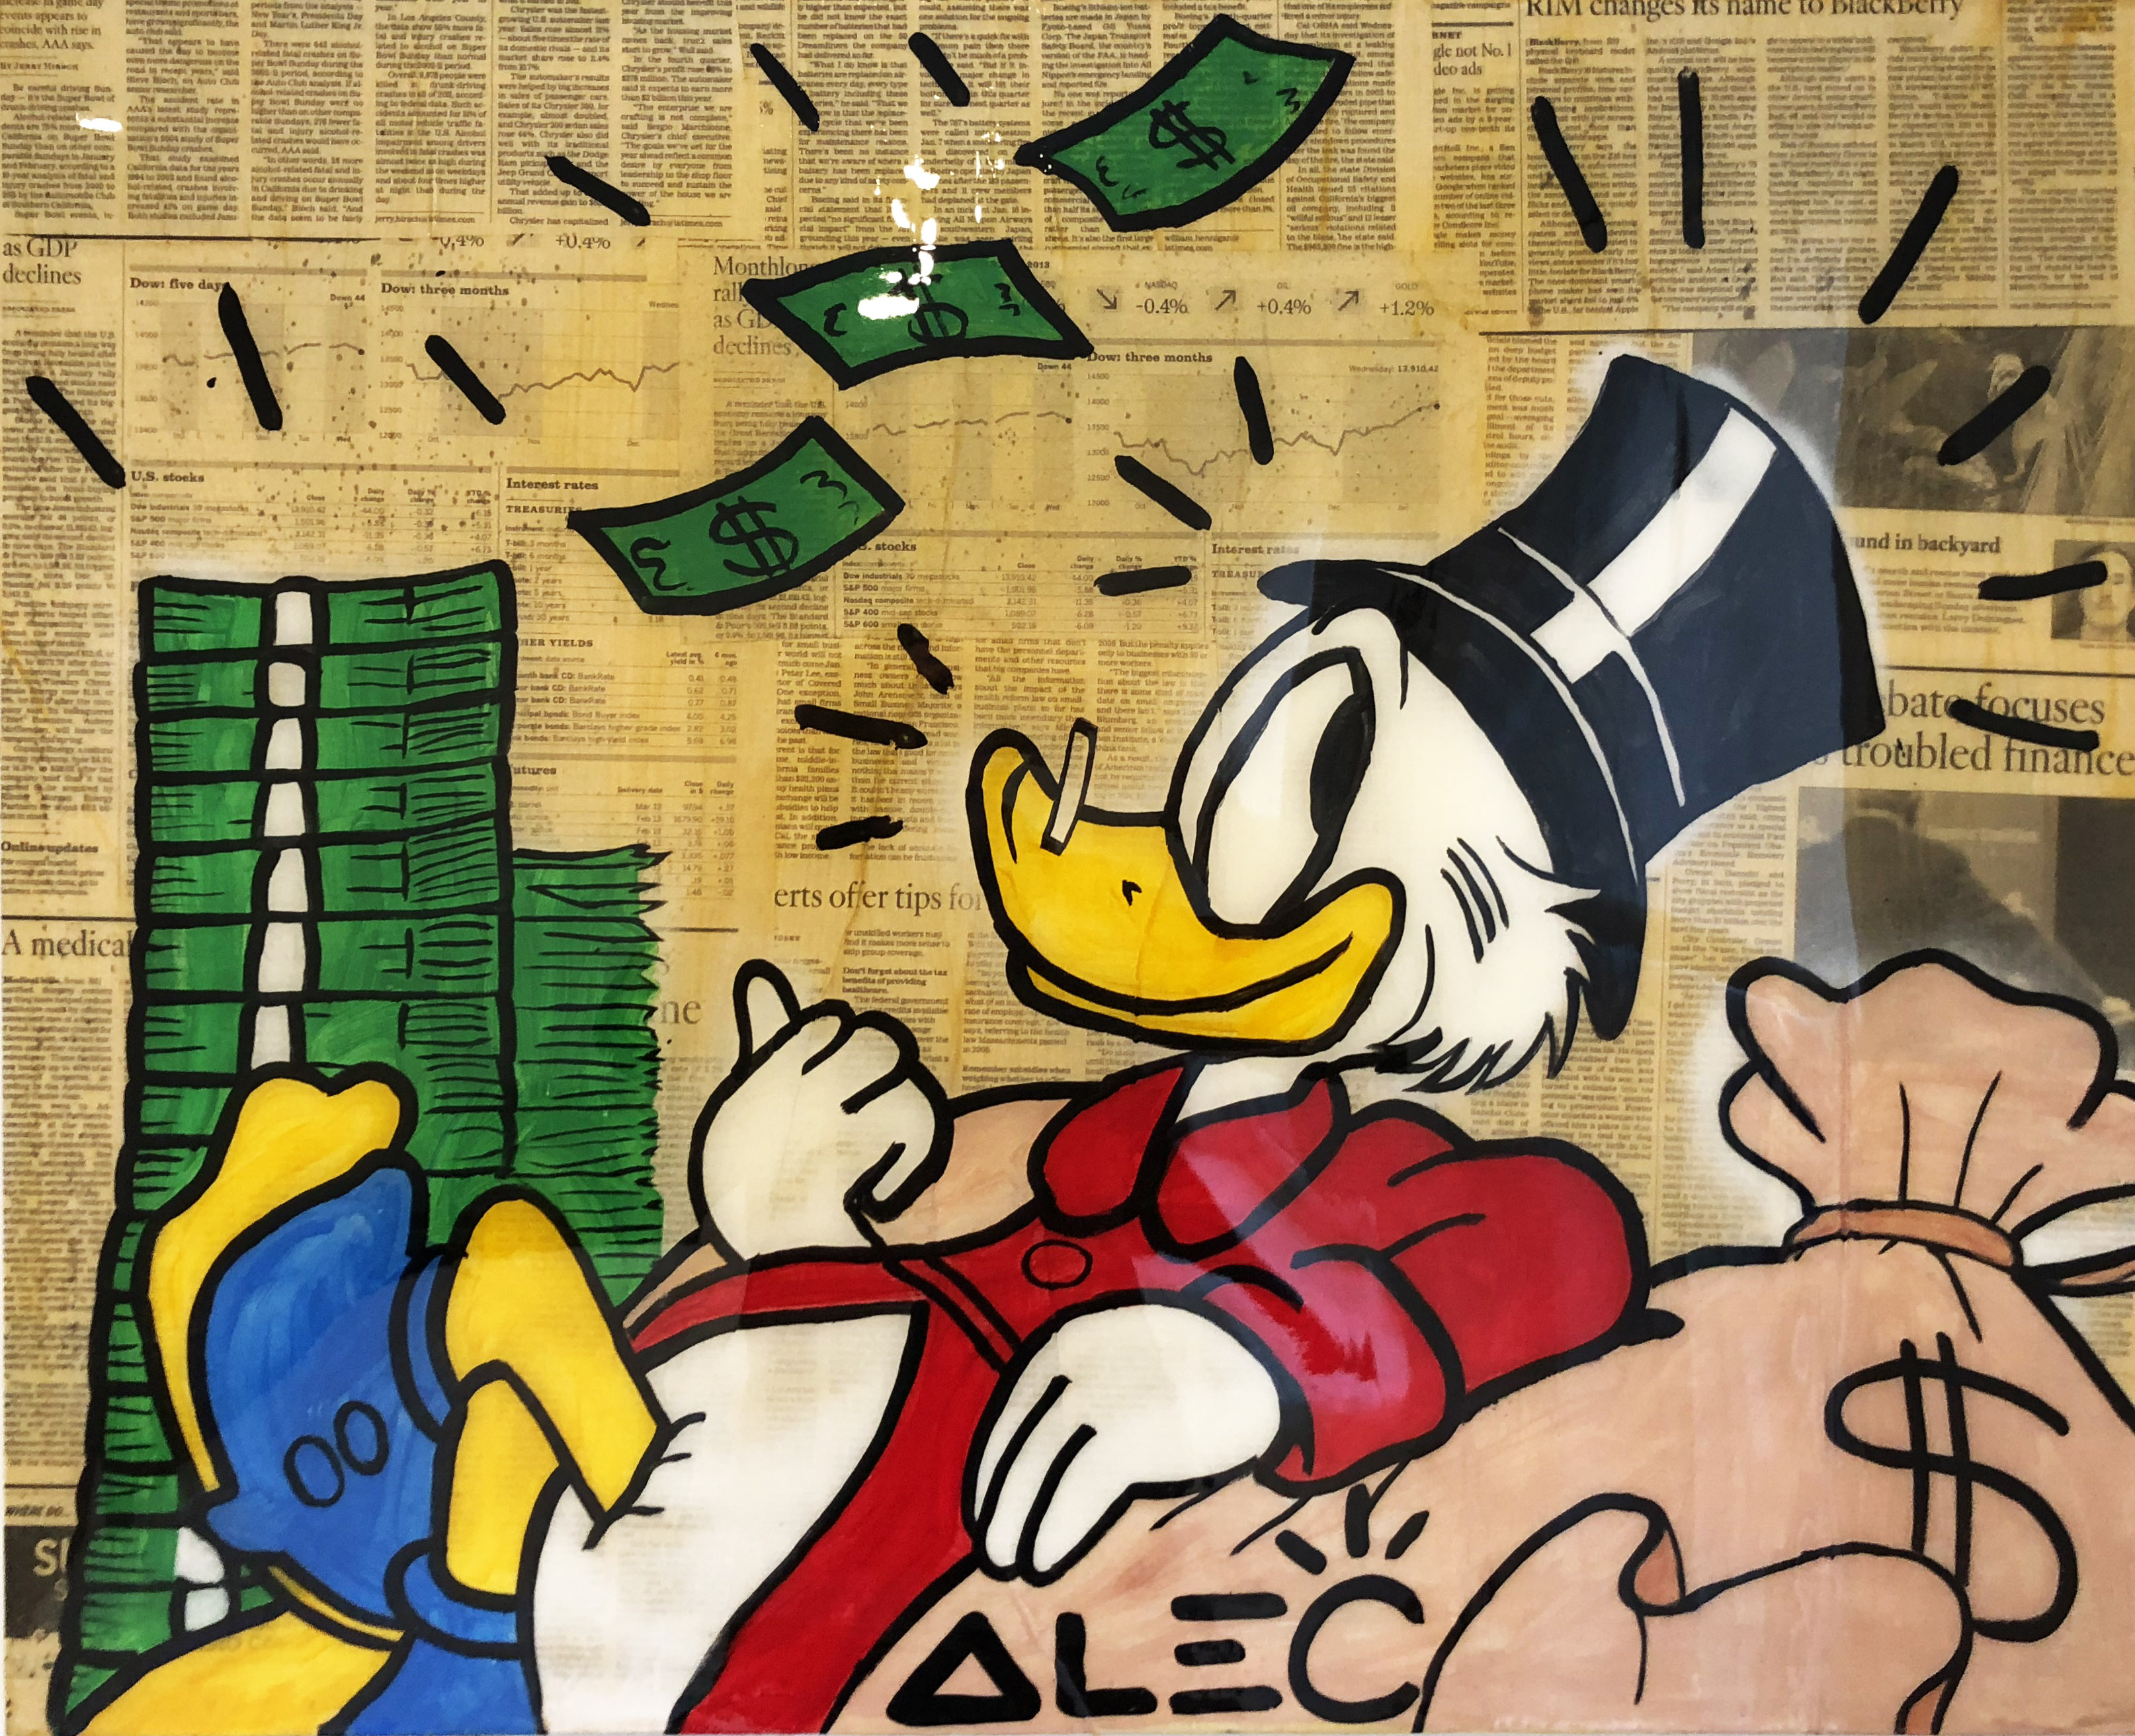 Scrooge Cash by Alec Monopoly